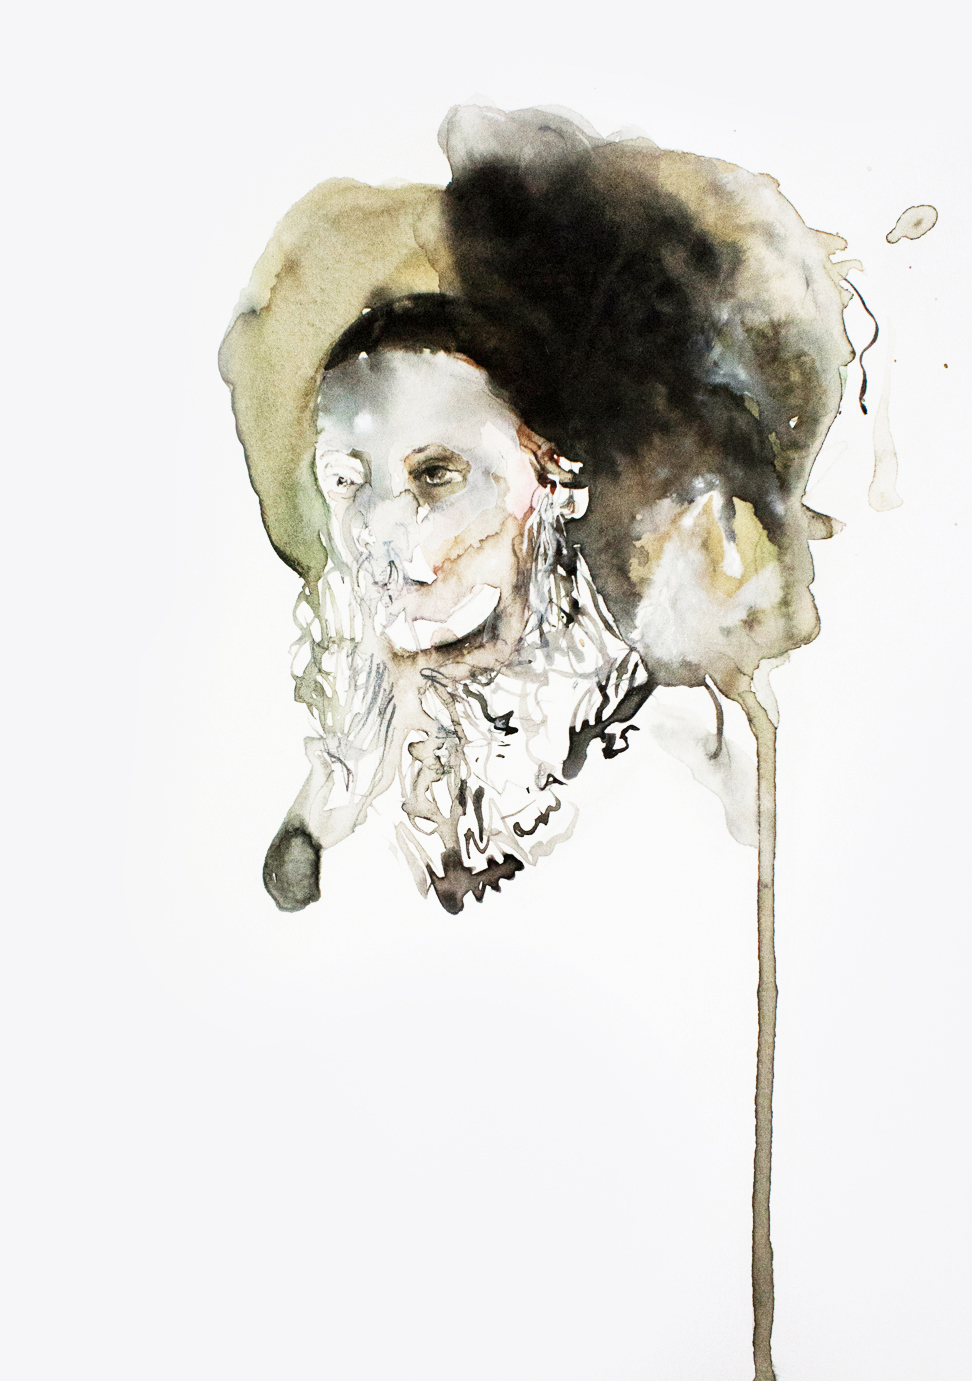 Warrior, 2013, 40x27cm, watercolor on paper